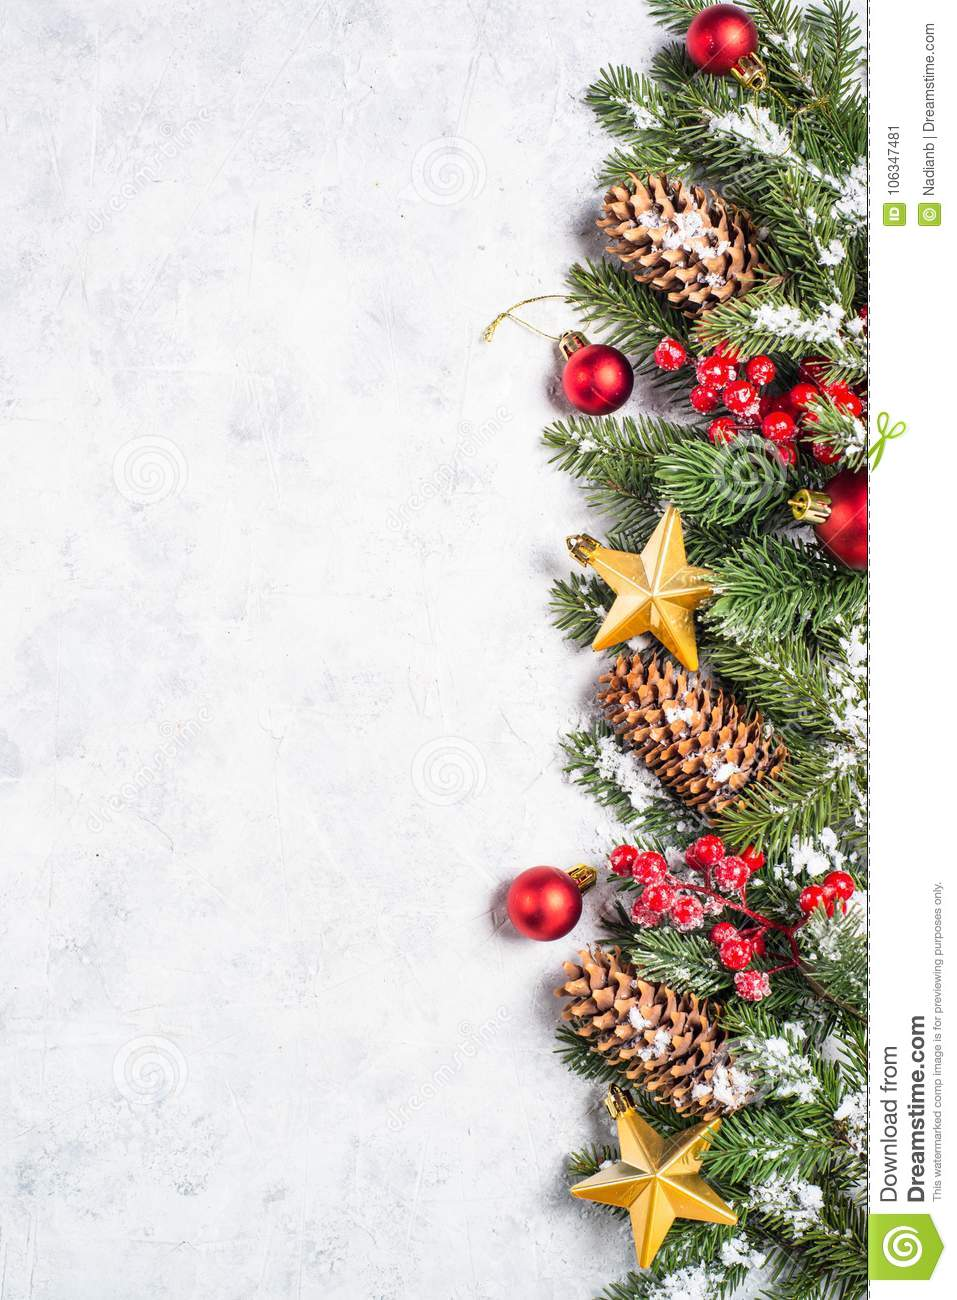 Christmas background. with fir tree and decorations.